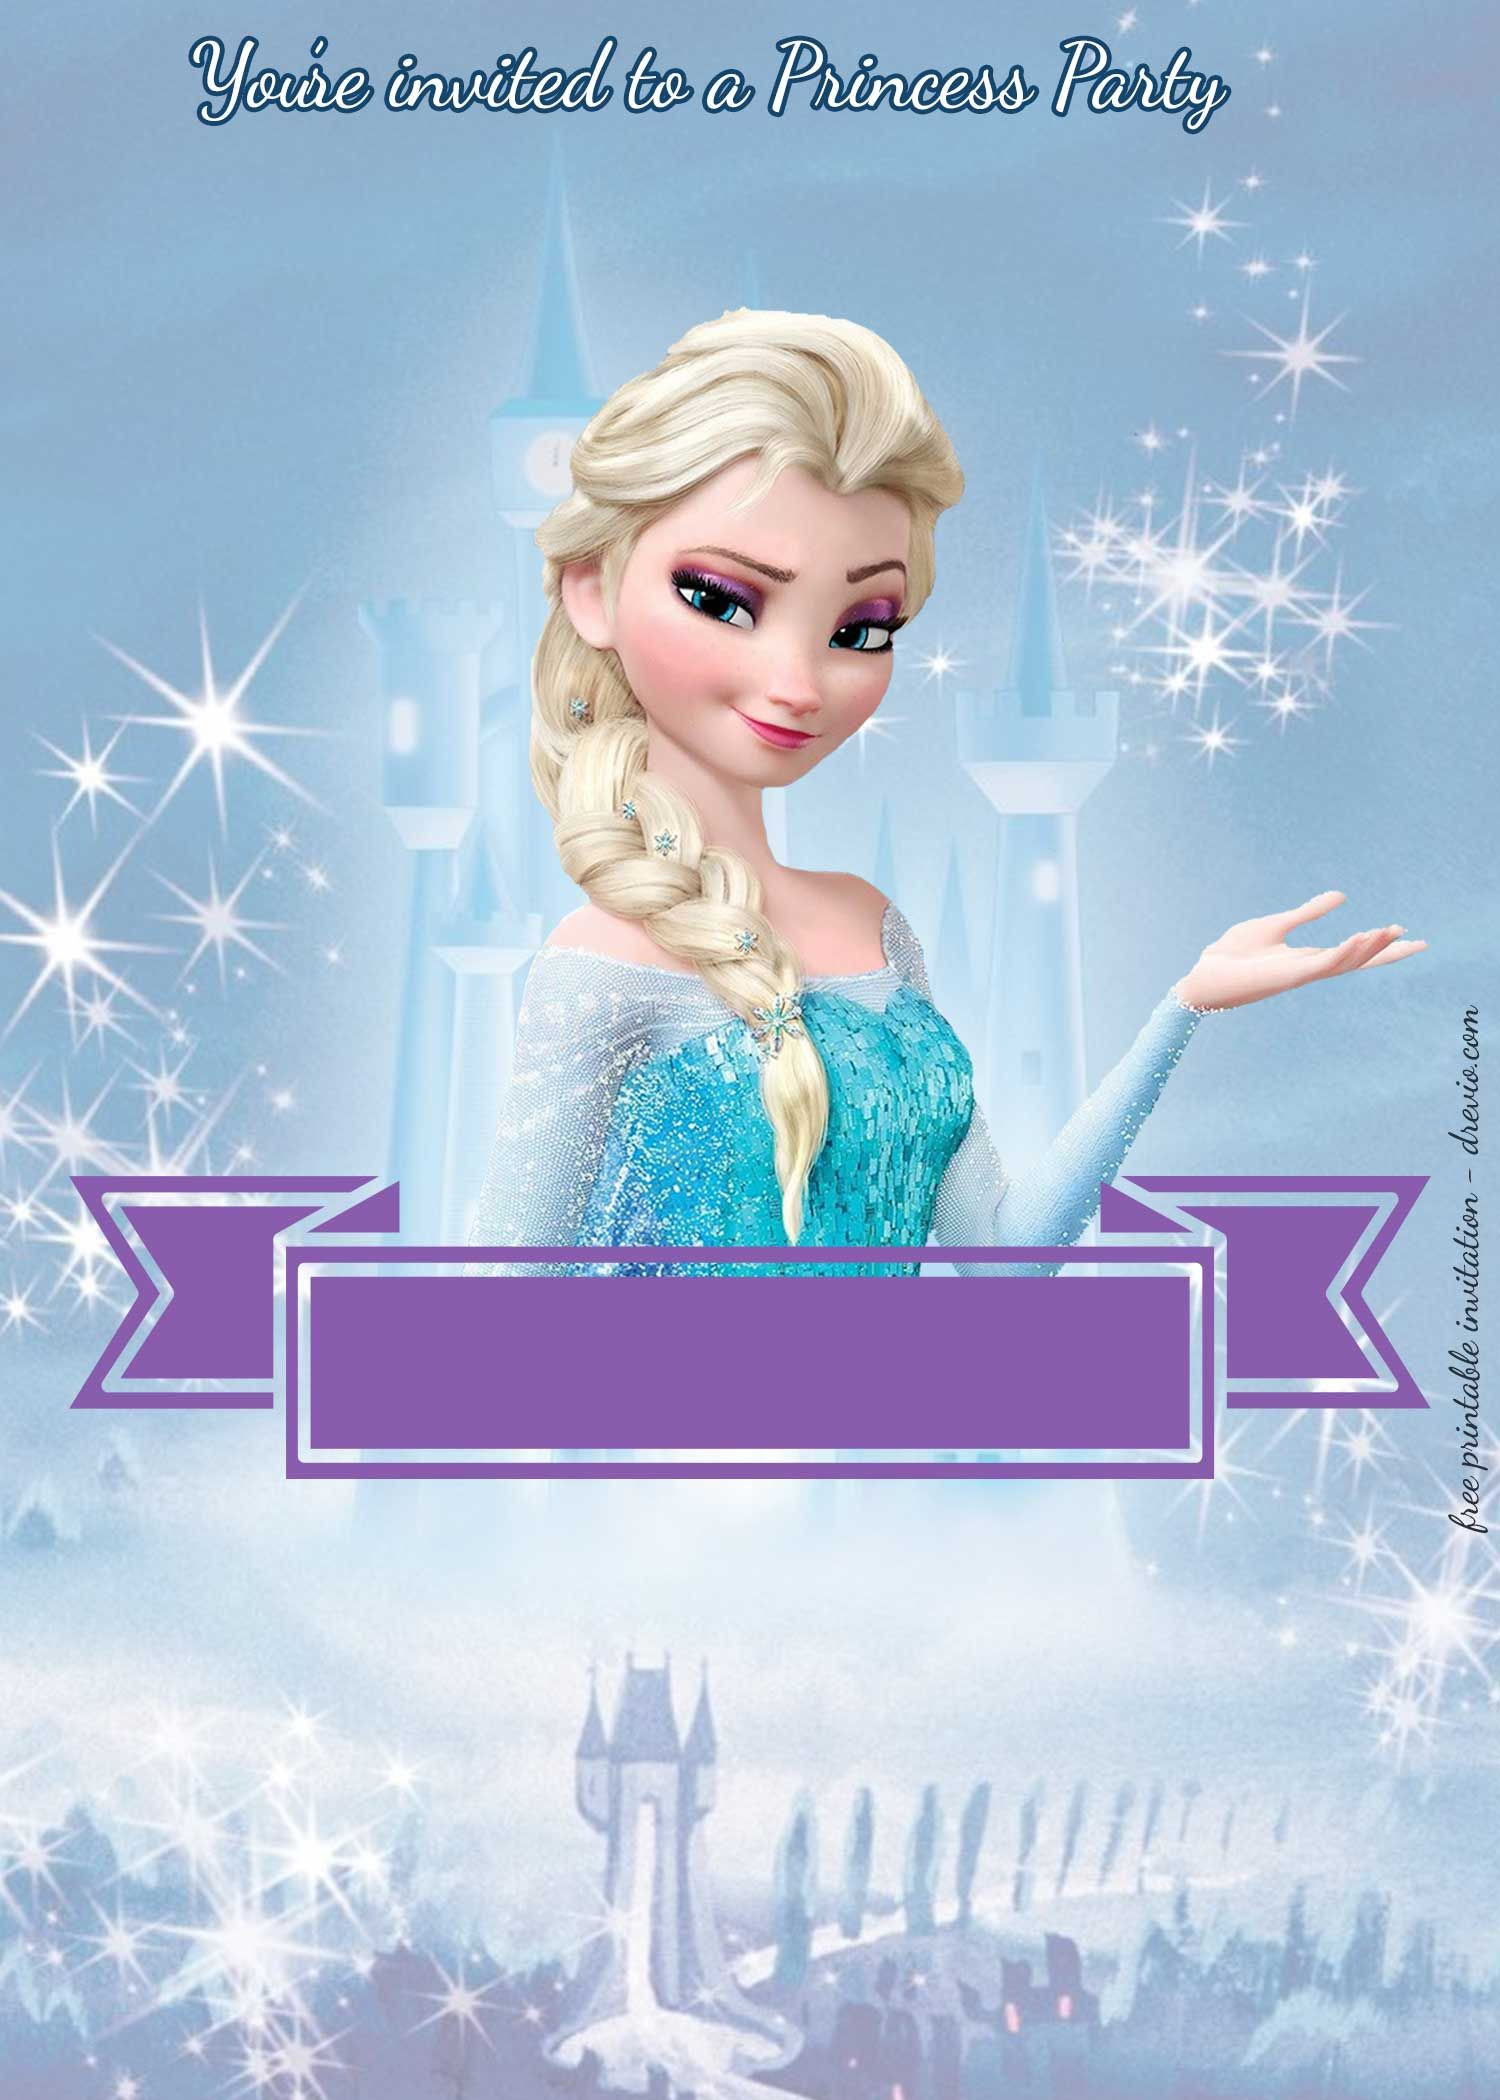 Frozen Invitations Printable Free Princess Party Birthday Invitation Templates